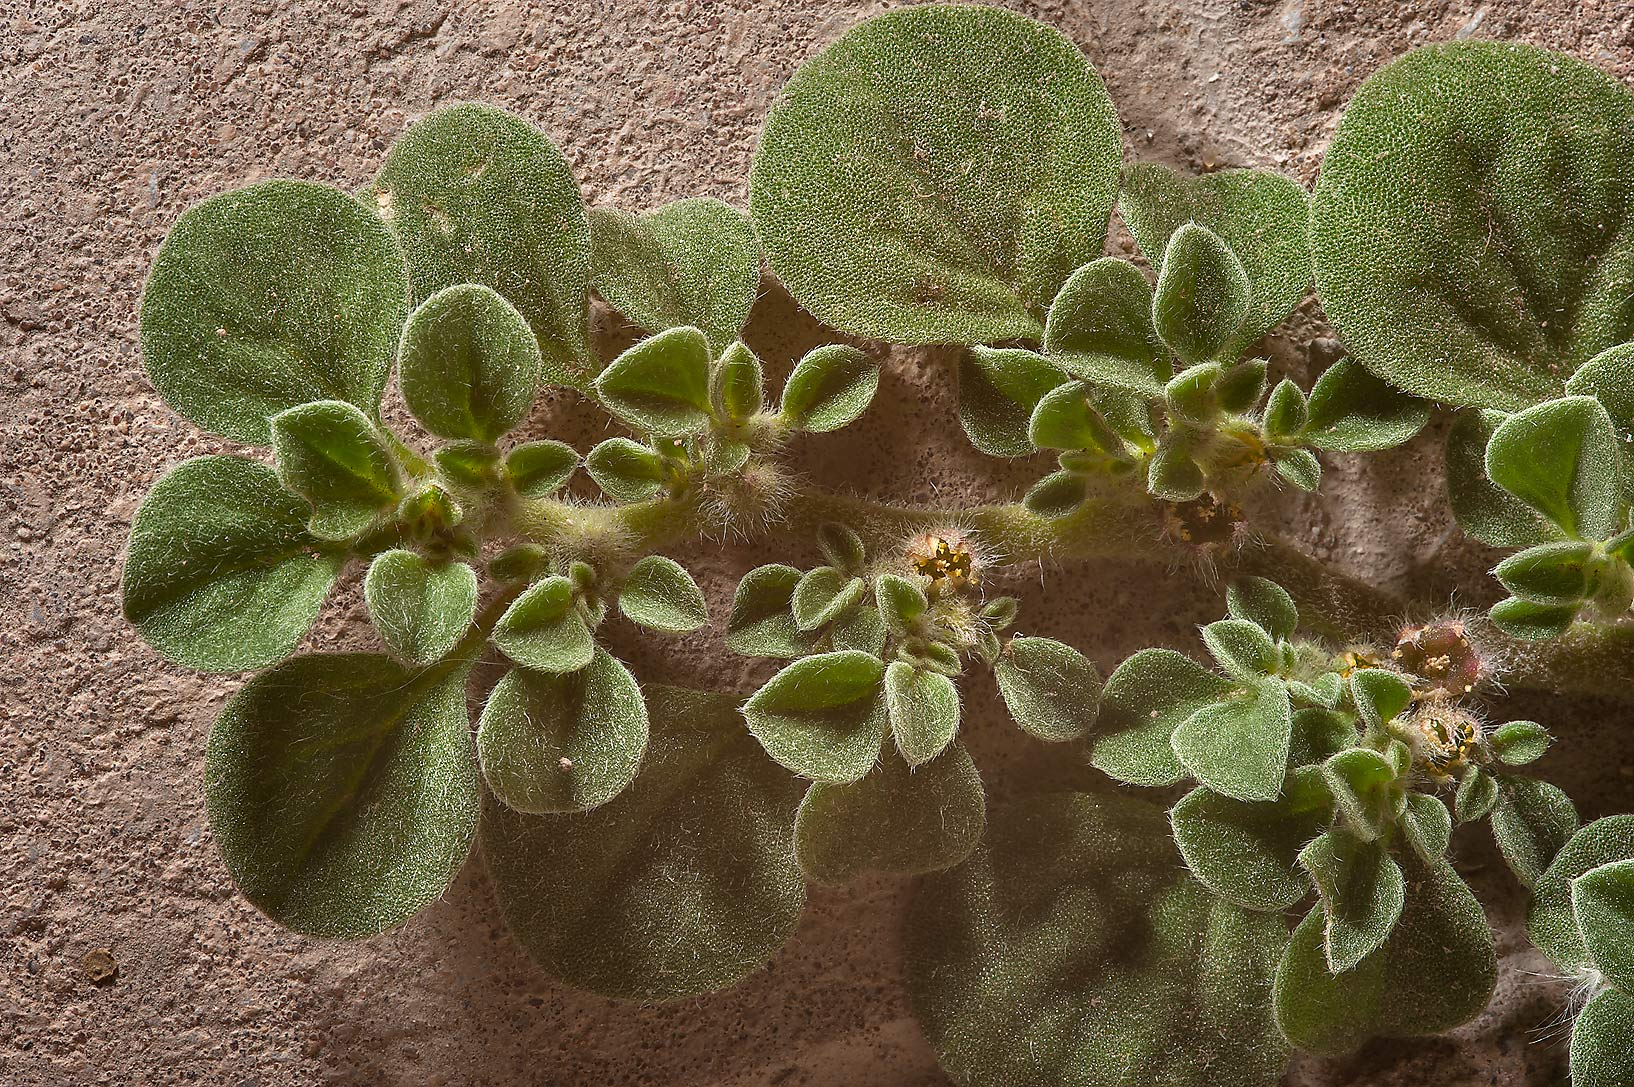 Purslane-leaved aizoon (Aizoon canariense) on Al...St. near West Bay. Doha, Qatar